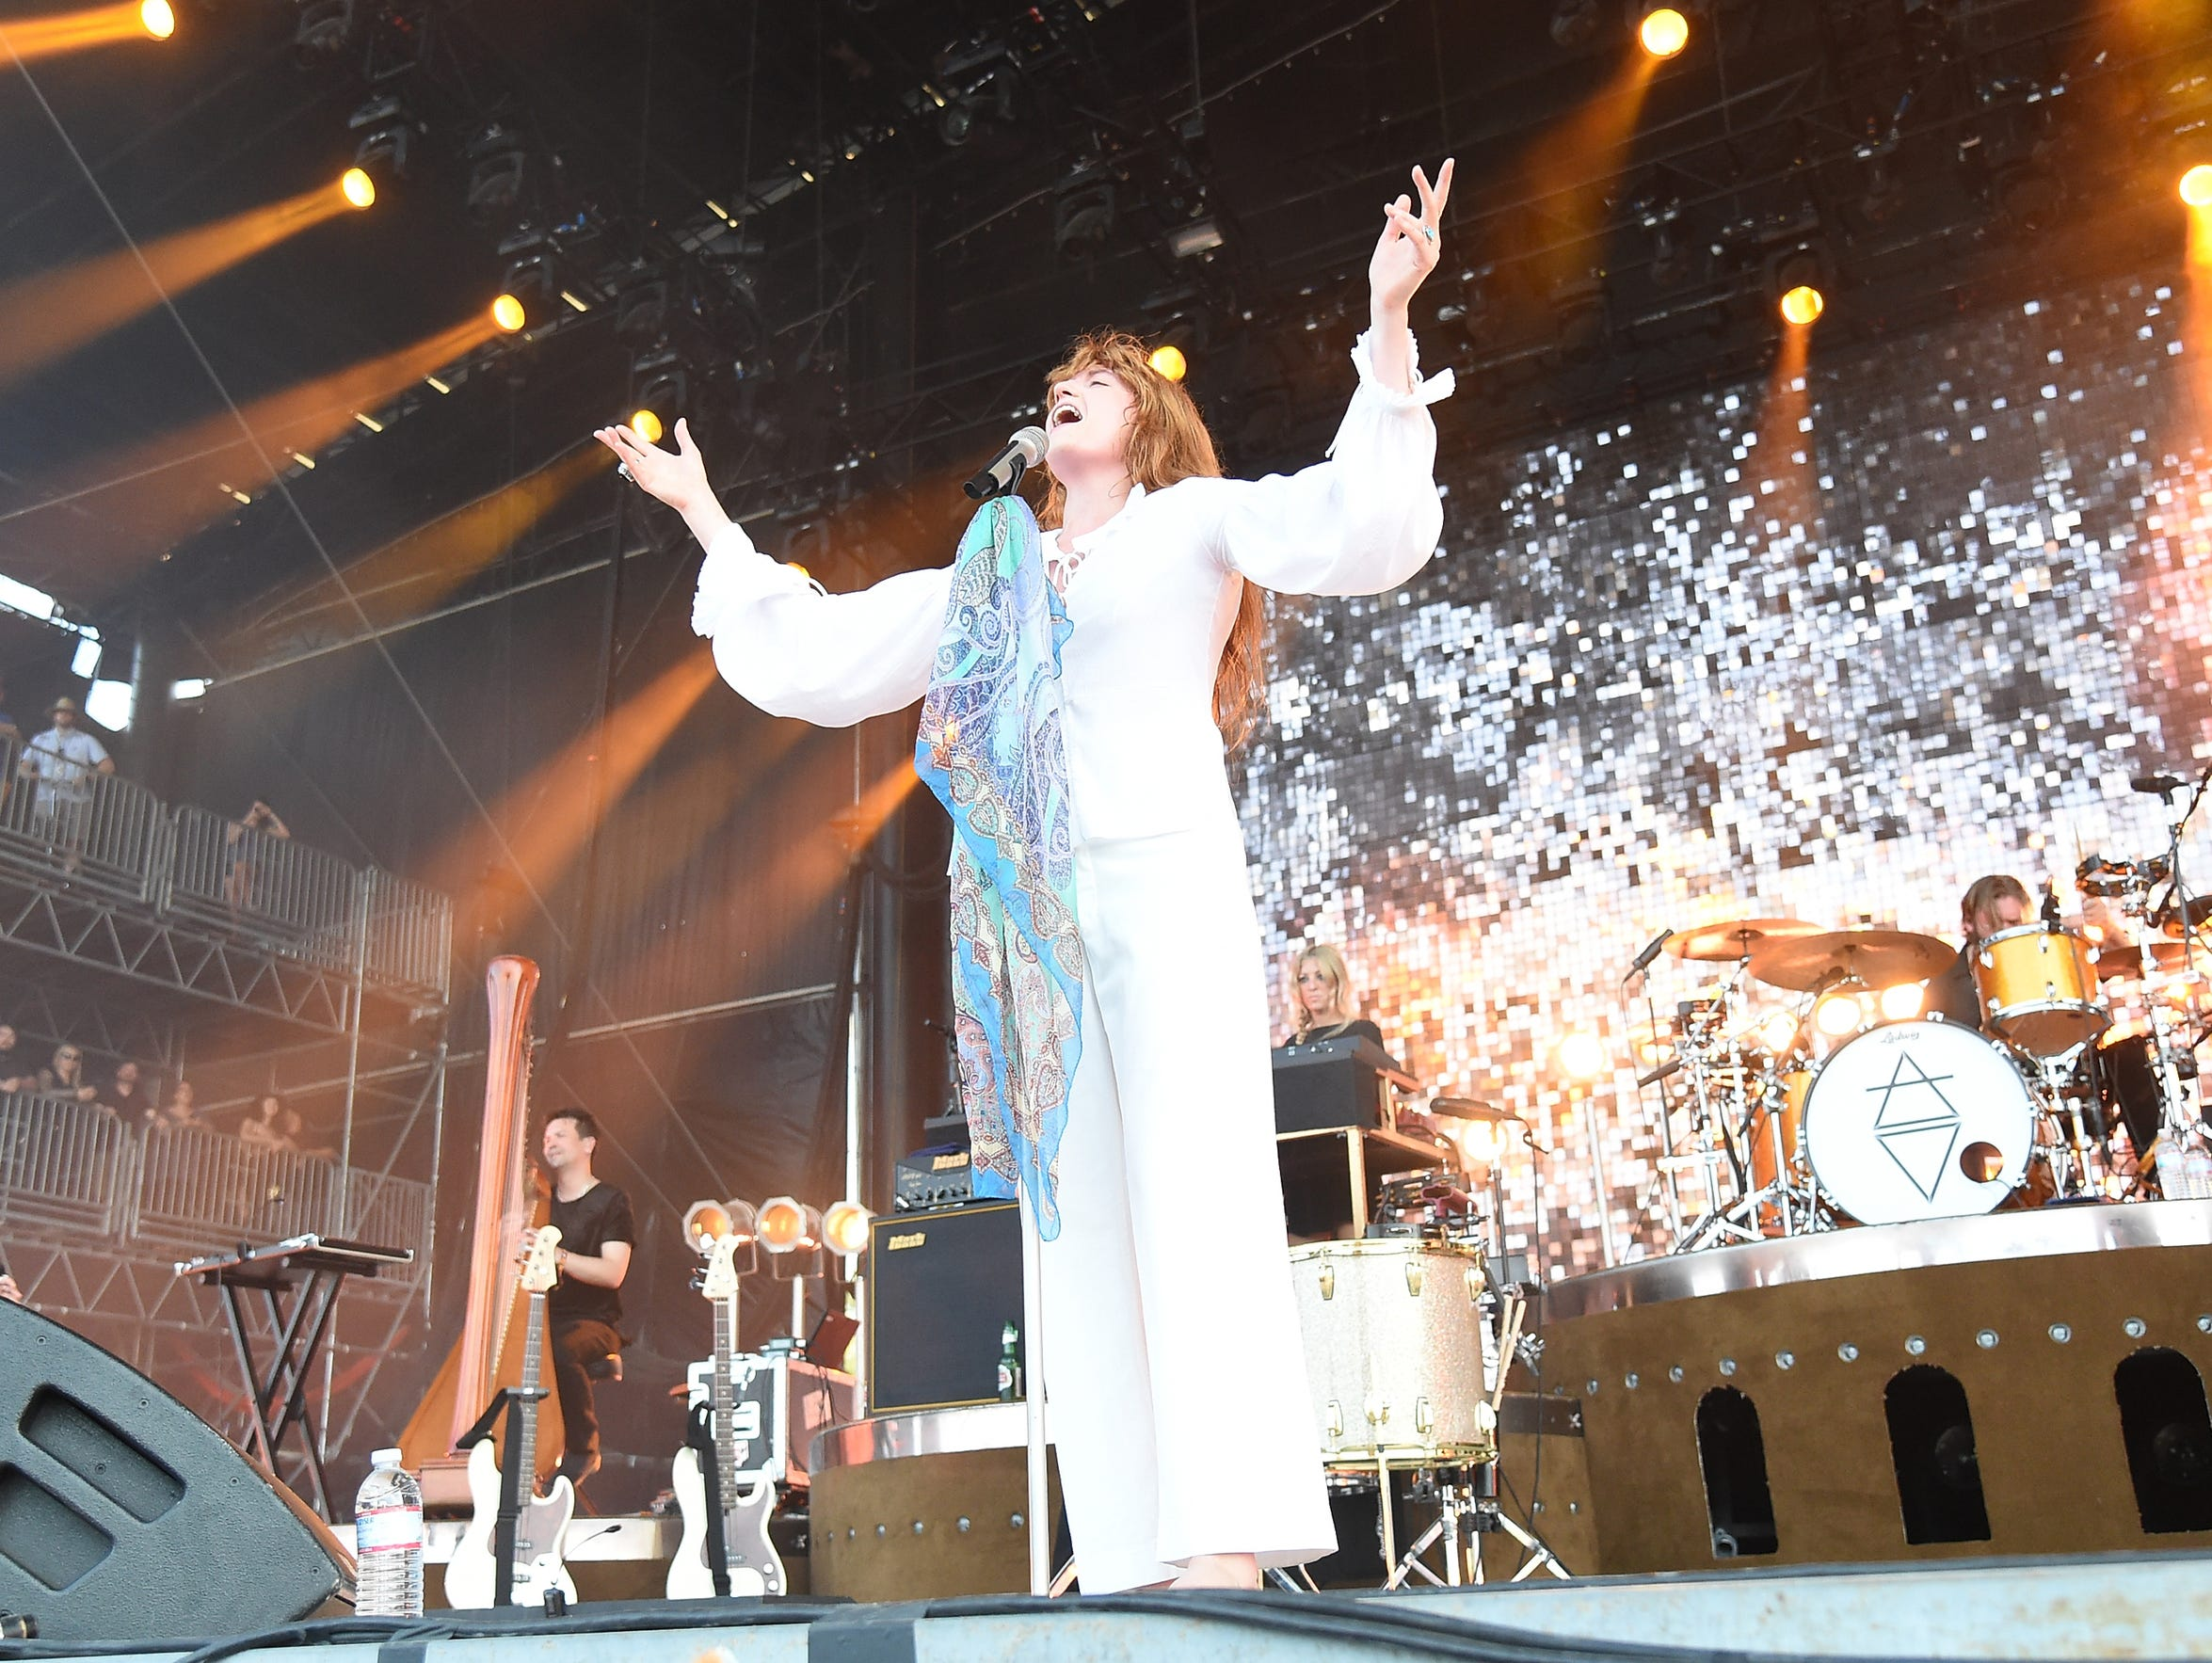 Florence and the Machine were one of the final acts